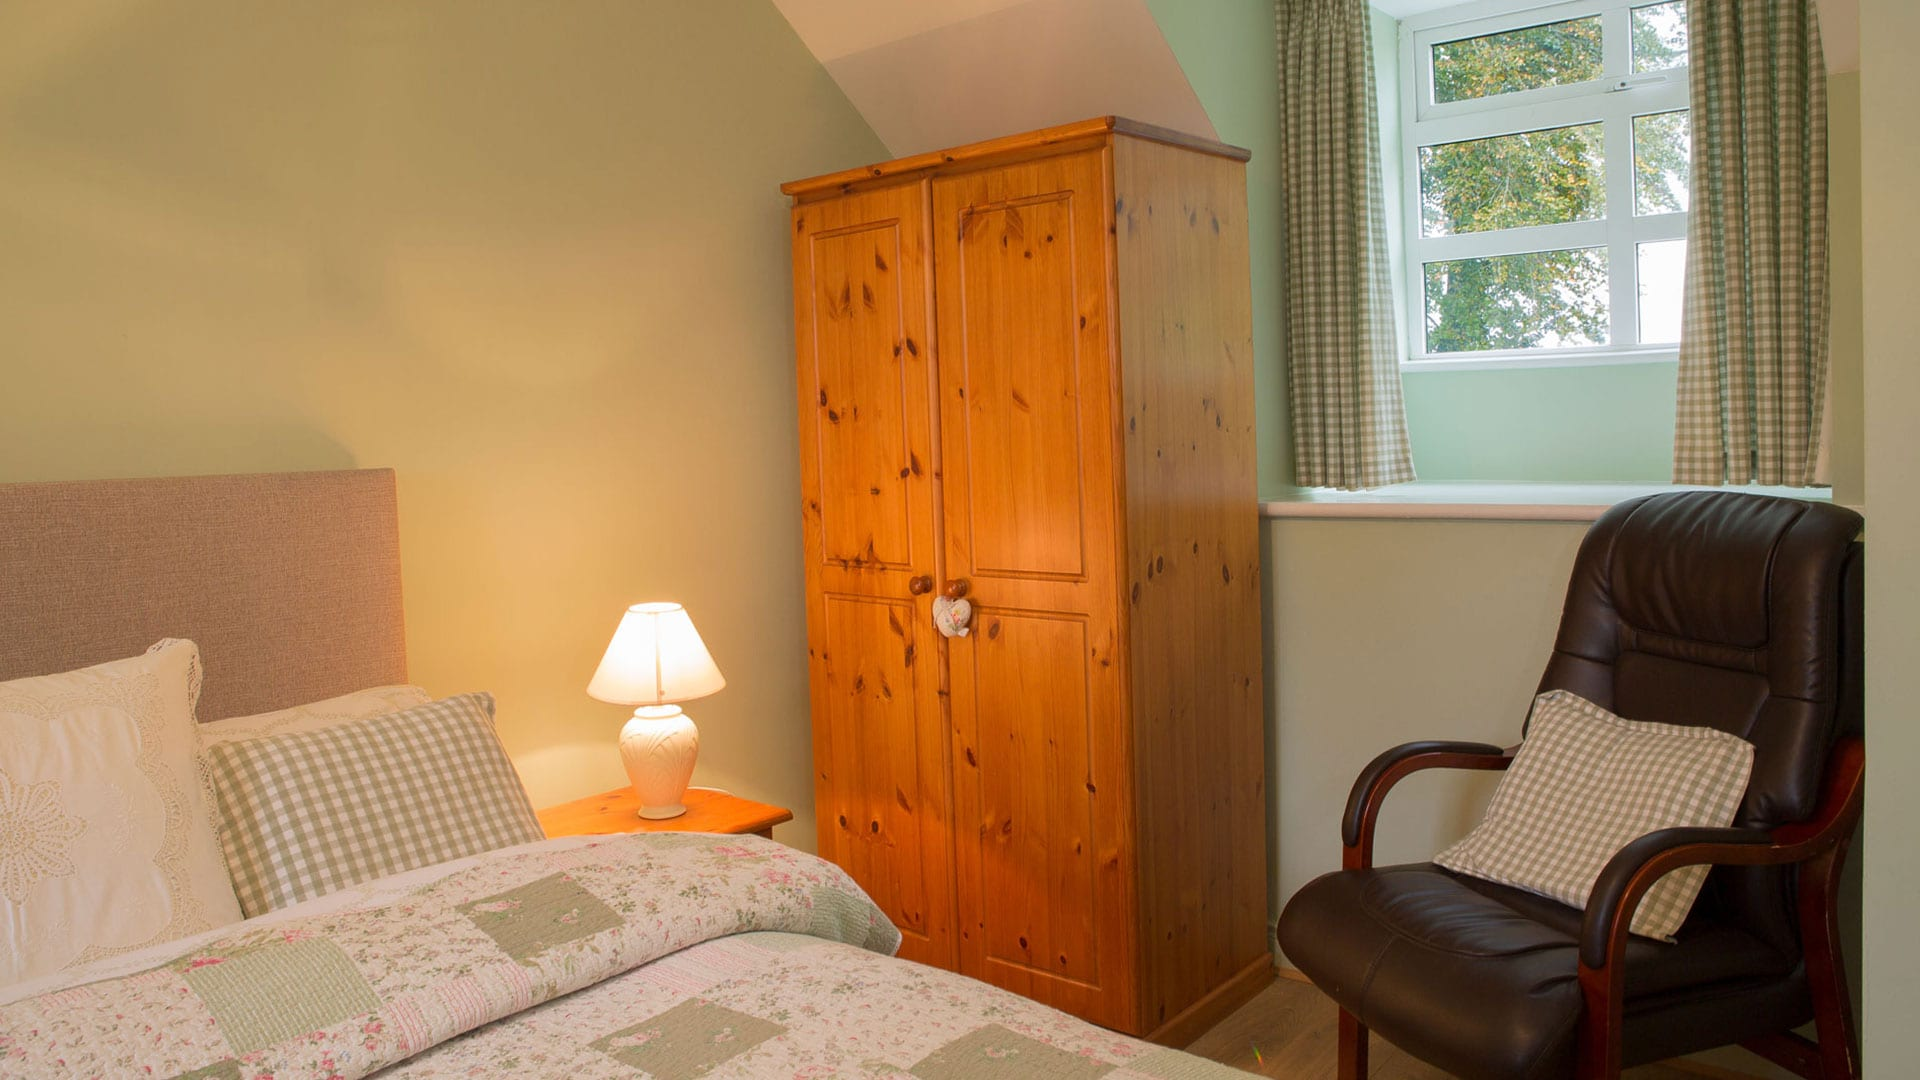 Chair-Wardrobe-Double-Room-Bedroom-Holiday-Homes-Ireland-Meath-Dunshaughlin-Self-Catering